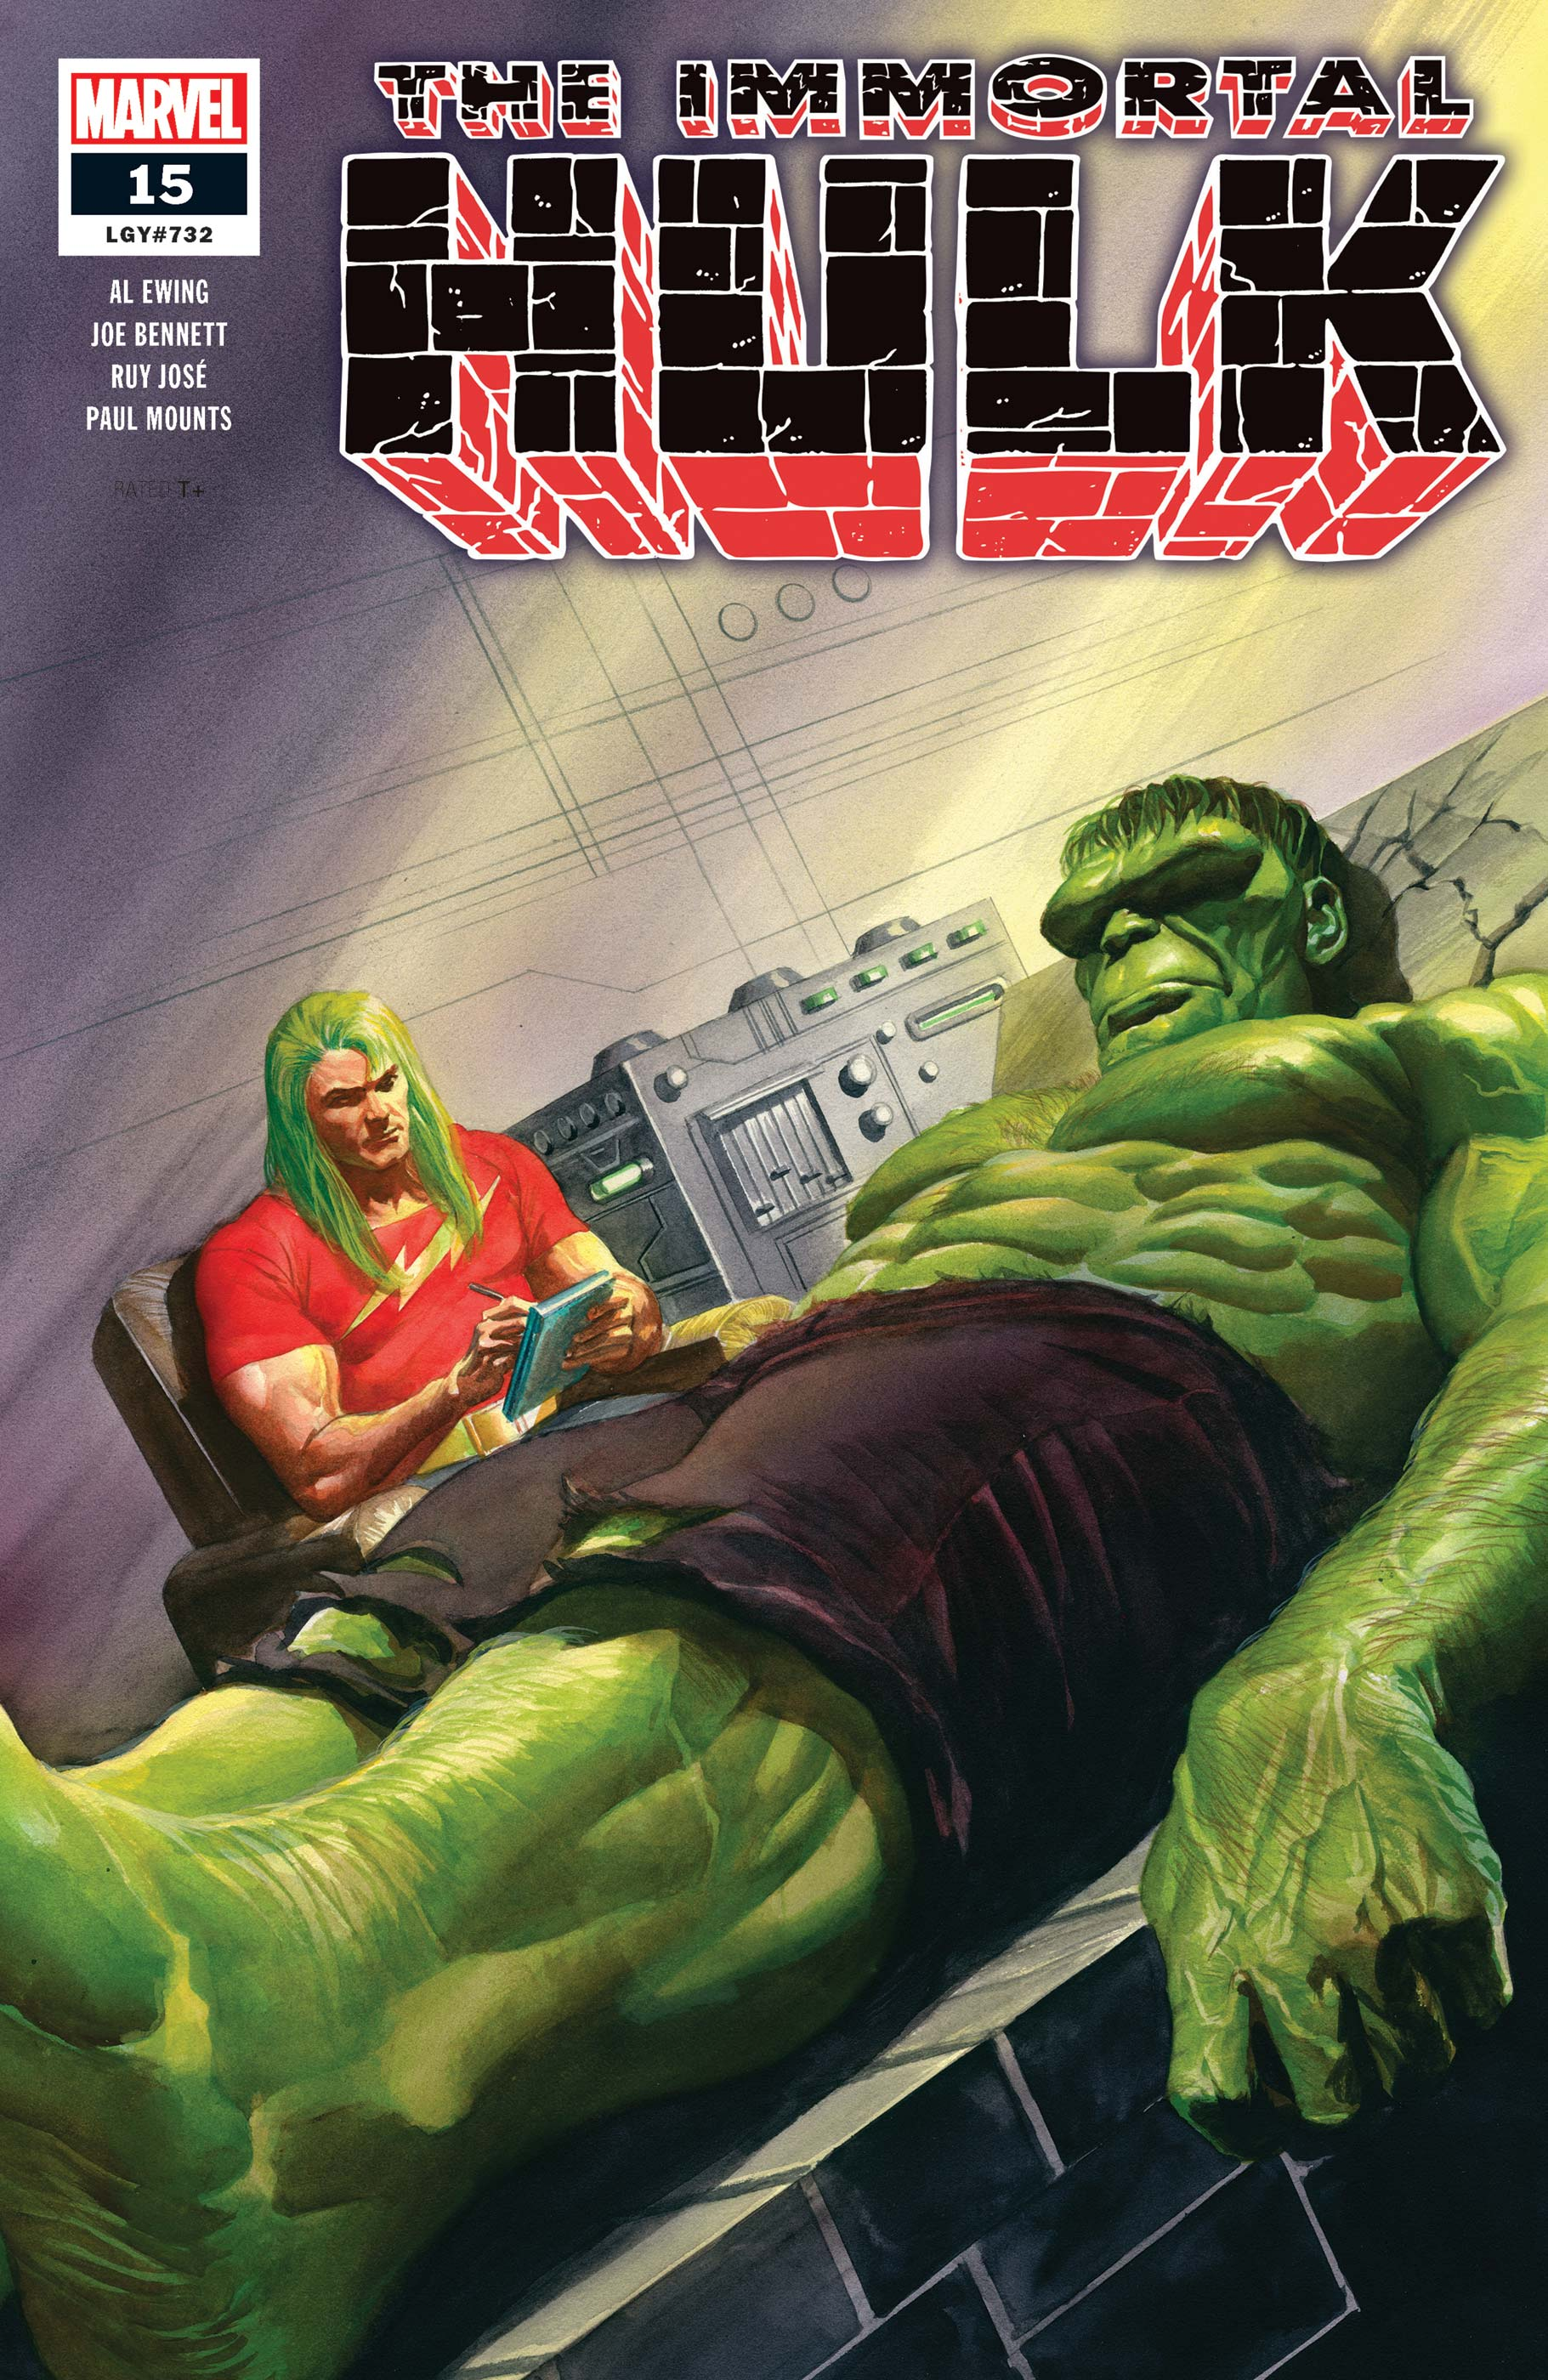 Immortal Hulk (2018) #15